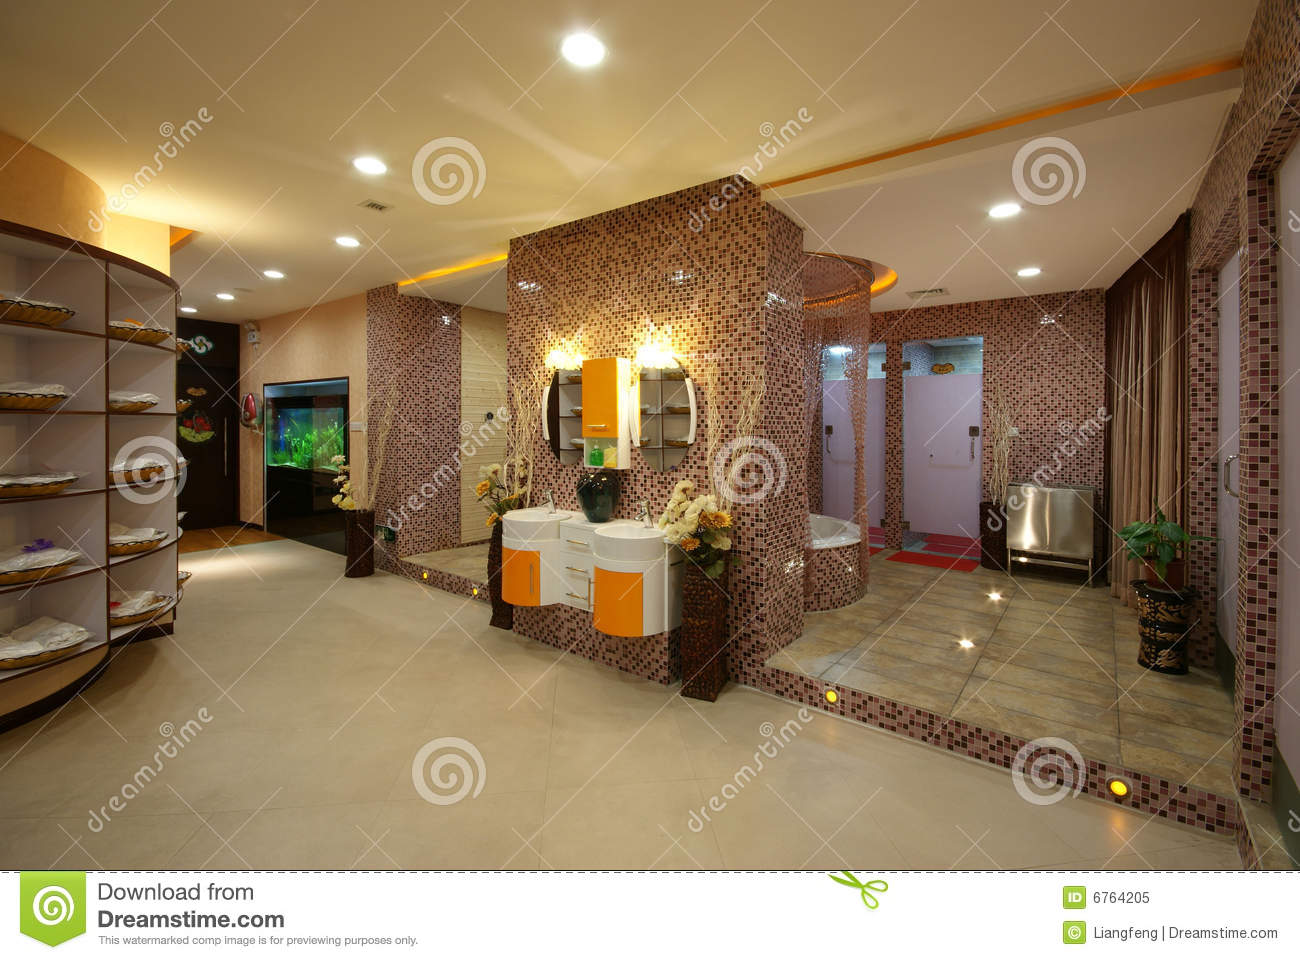 Beauty salon decoration royalty free stock photo image - Decoration salon photo ...